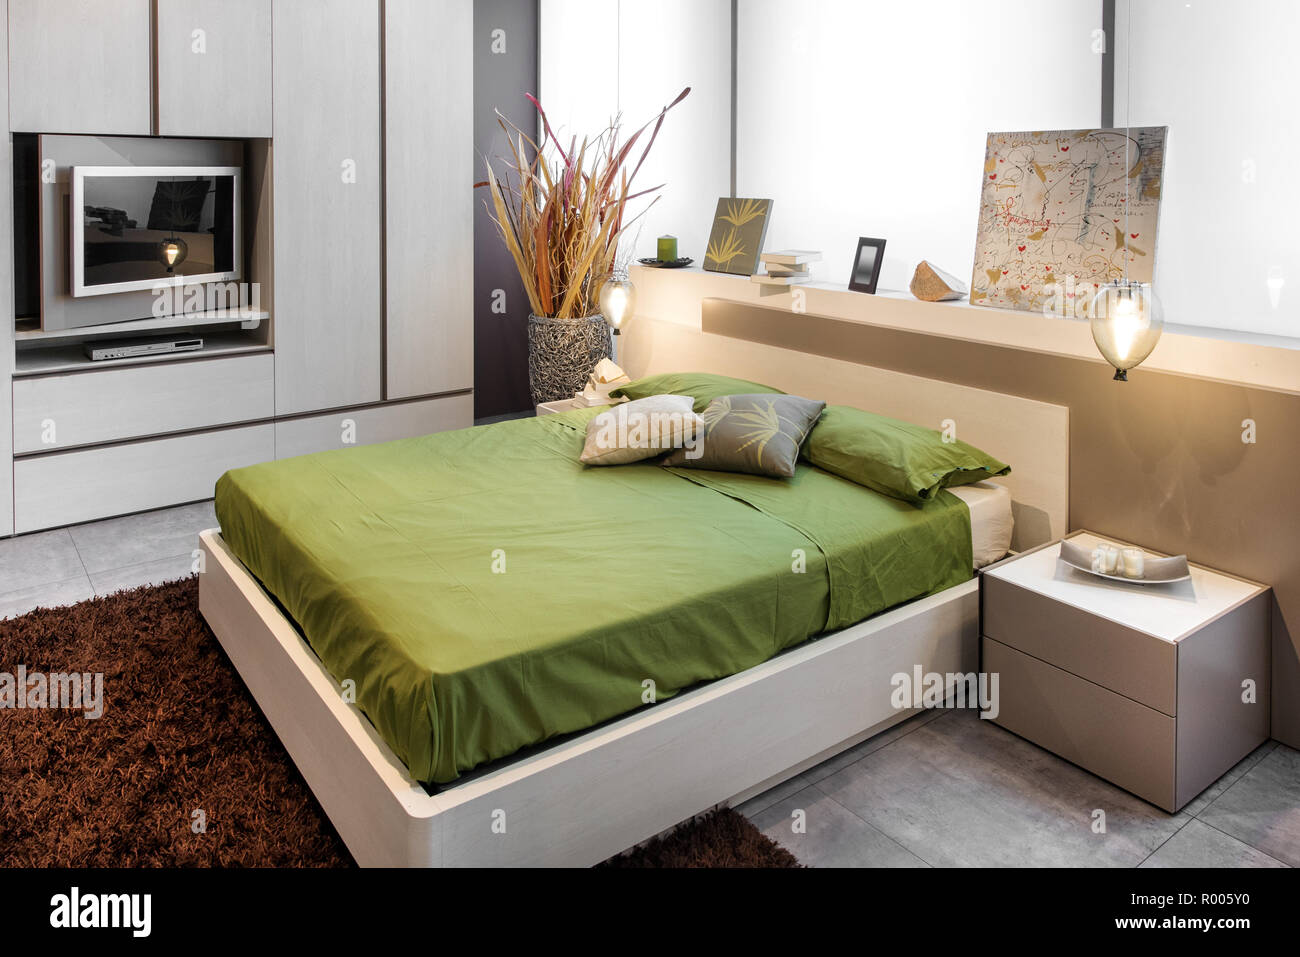 . Modern bedroom design with high double bed with green linens and